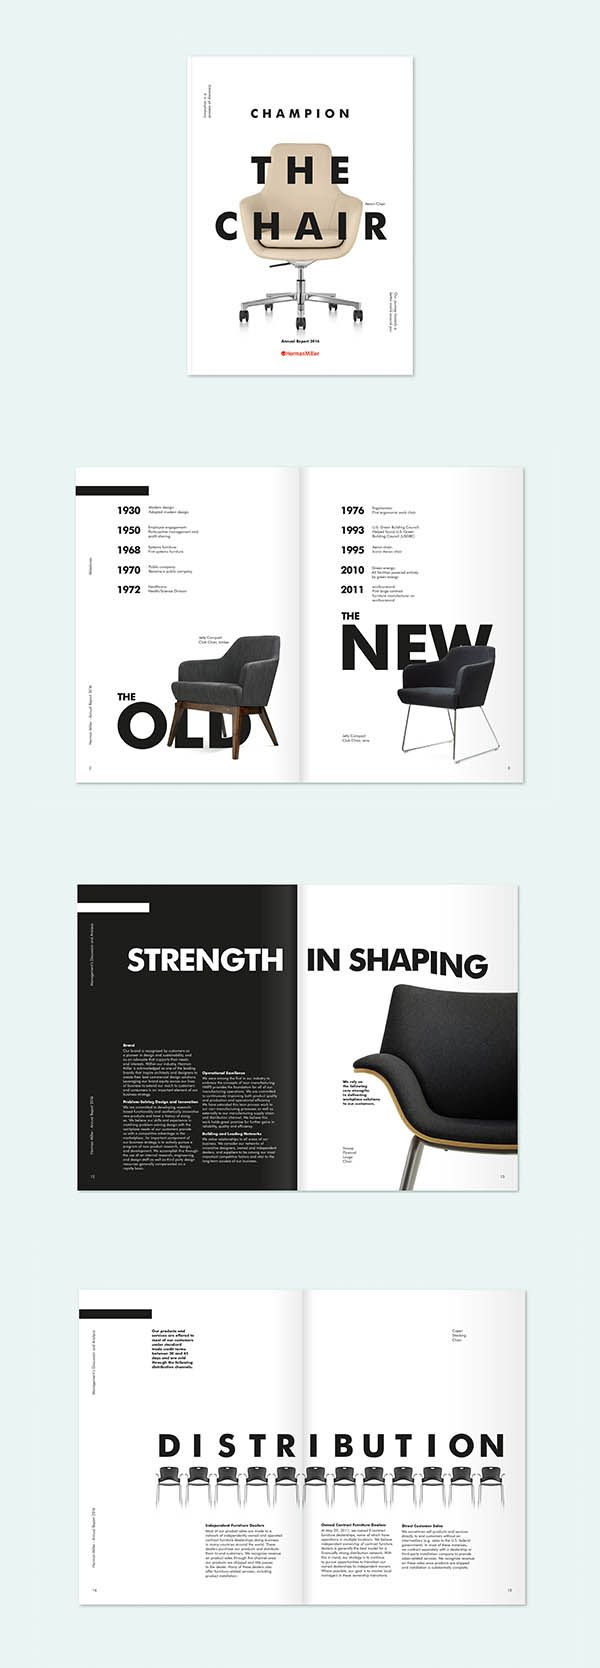 good use of footers and imagery as the negative space allows room for more text